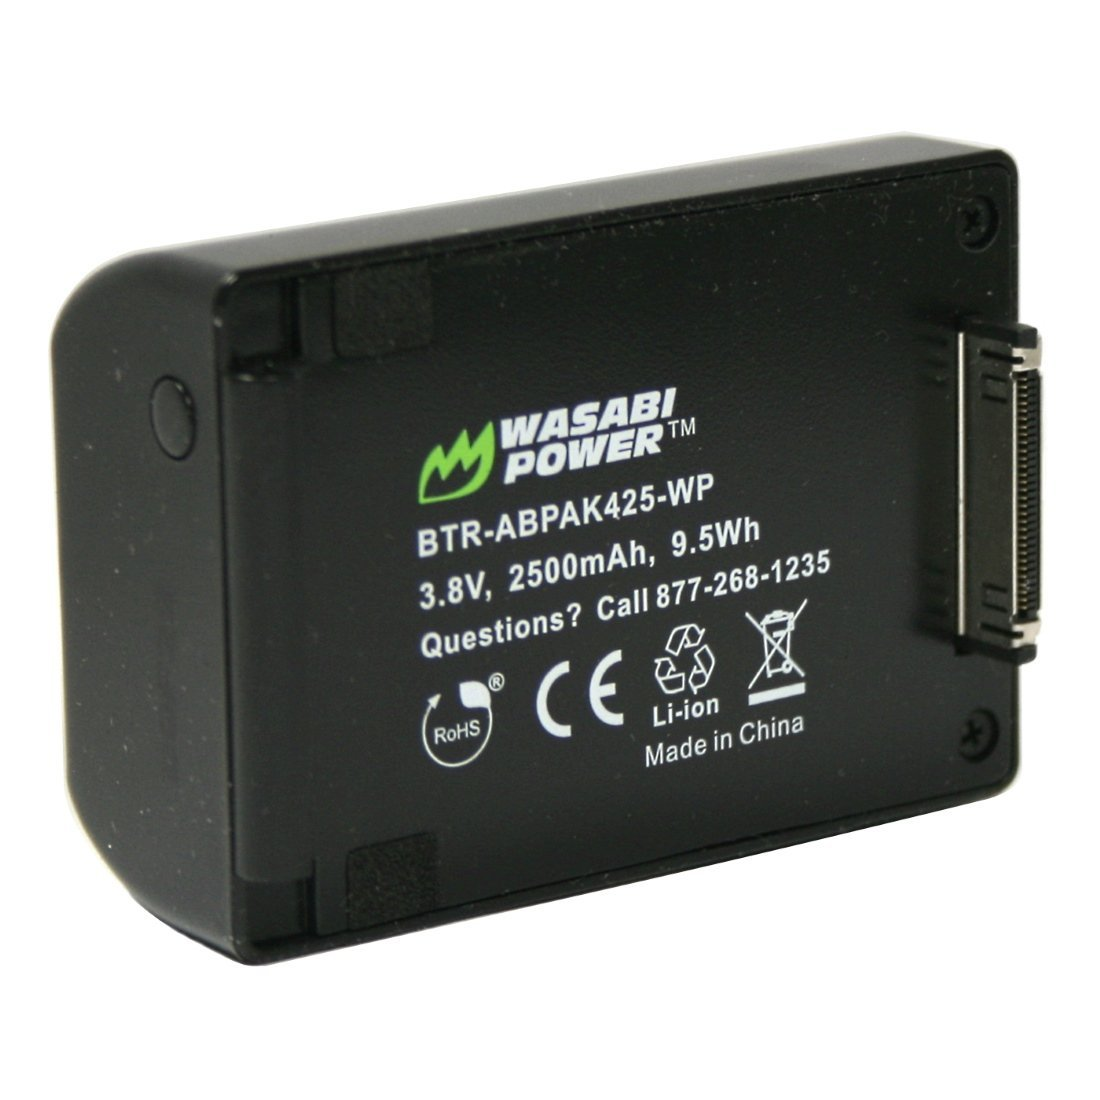 Wasabi Power Extended Battery for GoPro HERO4, HERO3+, HERO3 (2500mAh)